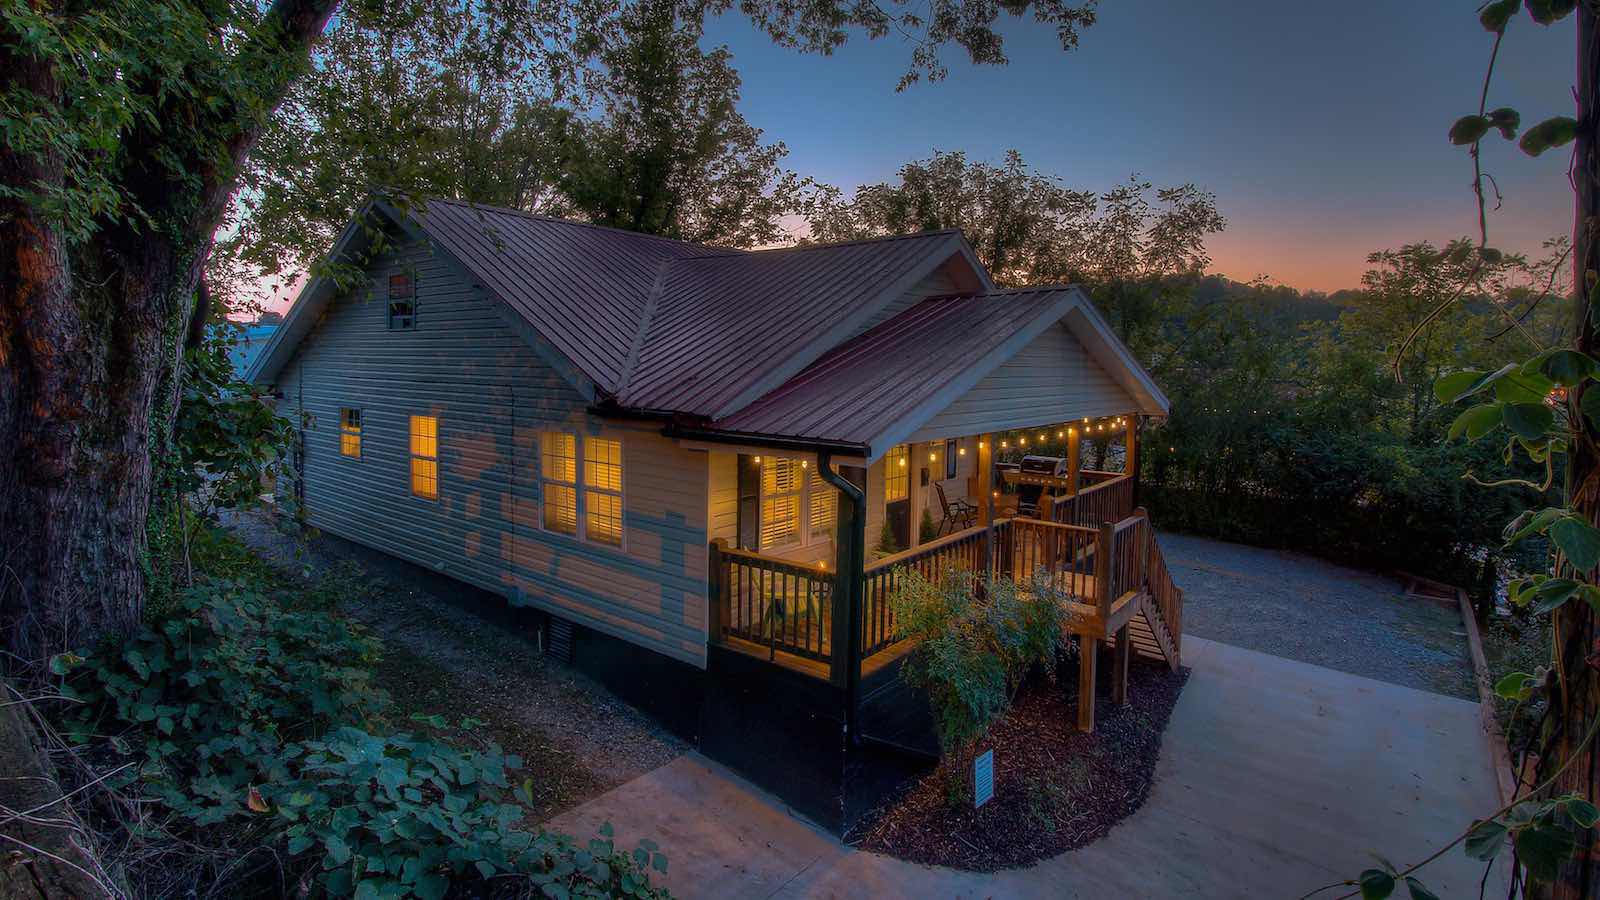 100 vacation cabin rentals near atlanta ga for Large cabin rentals north georgia